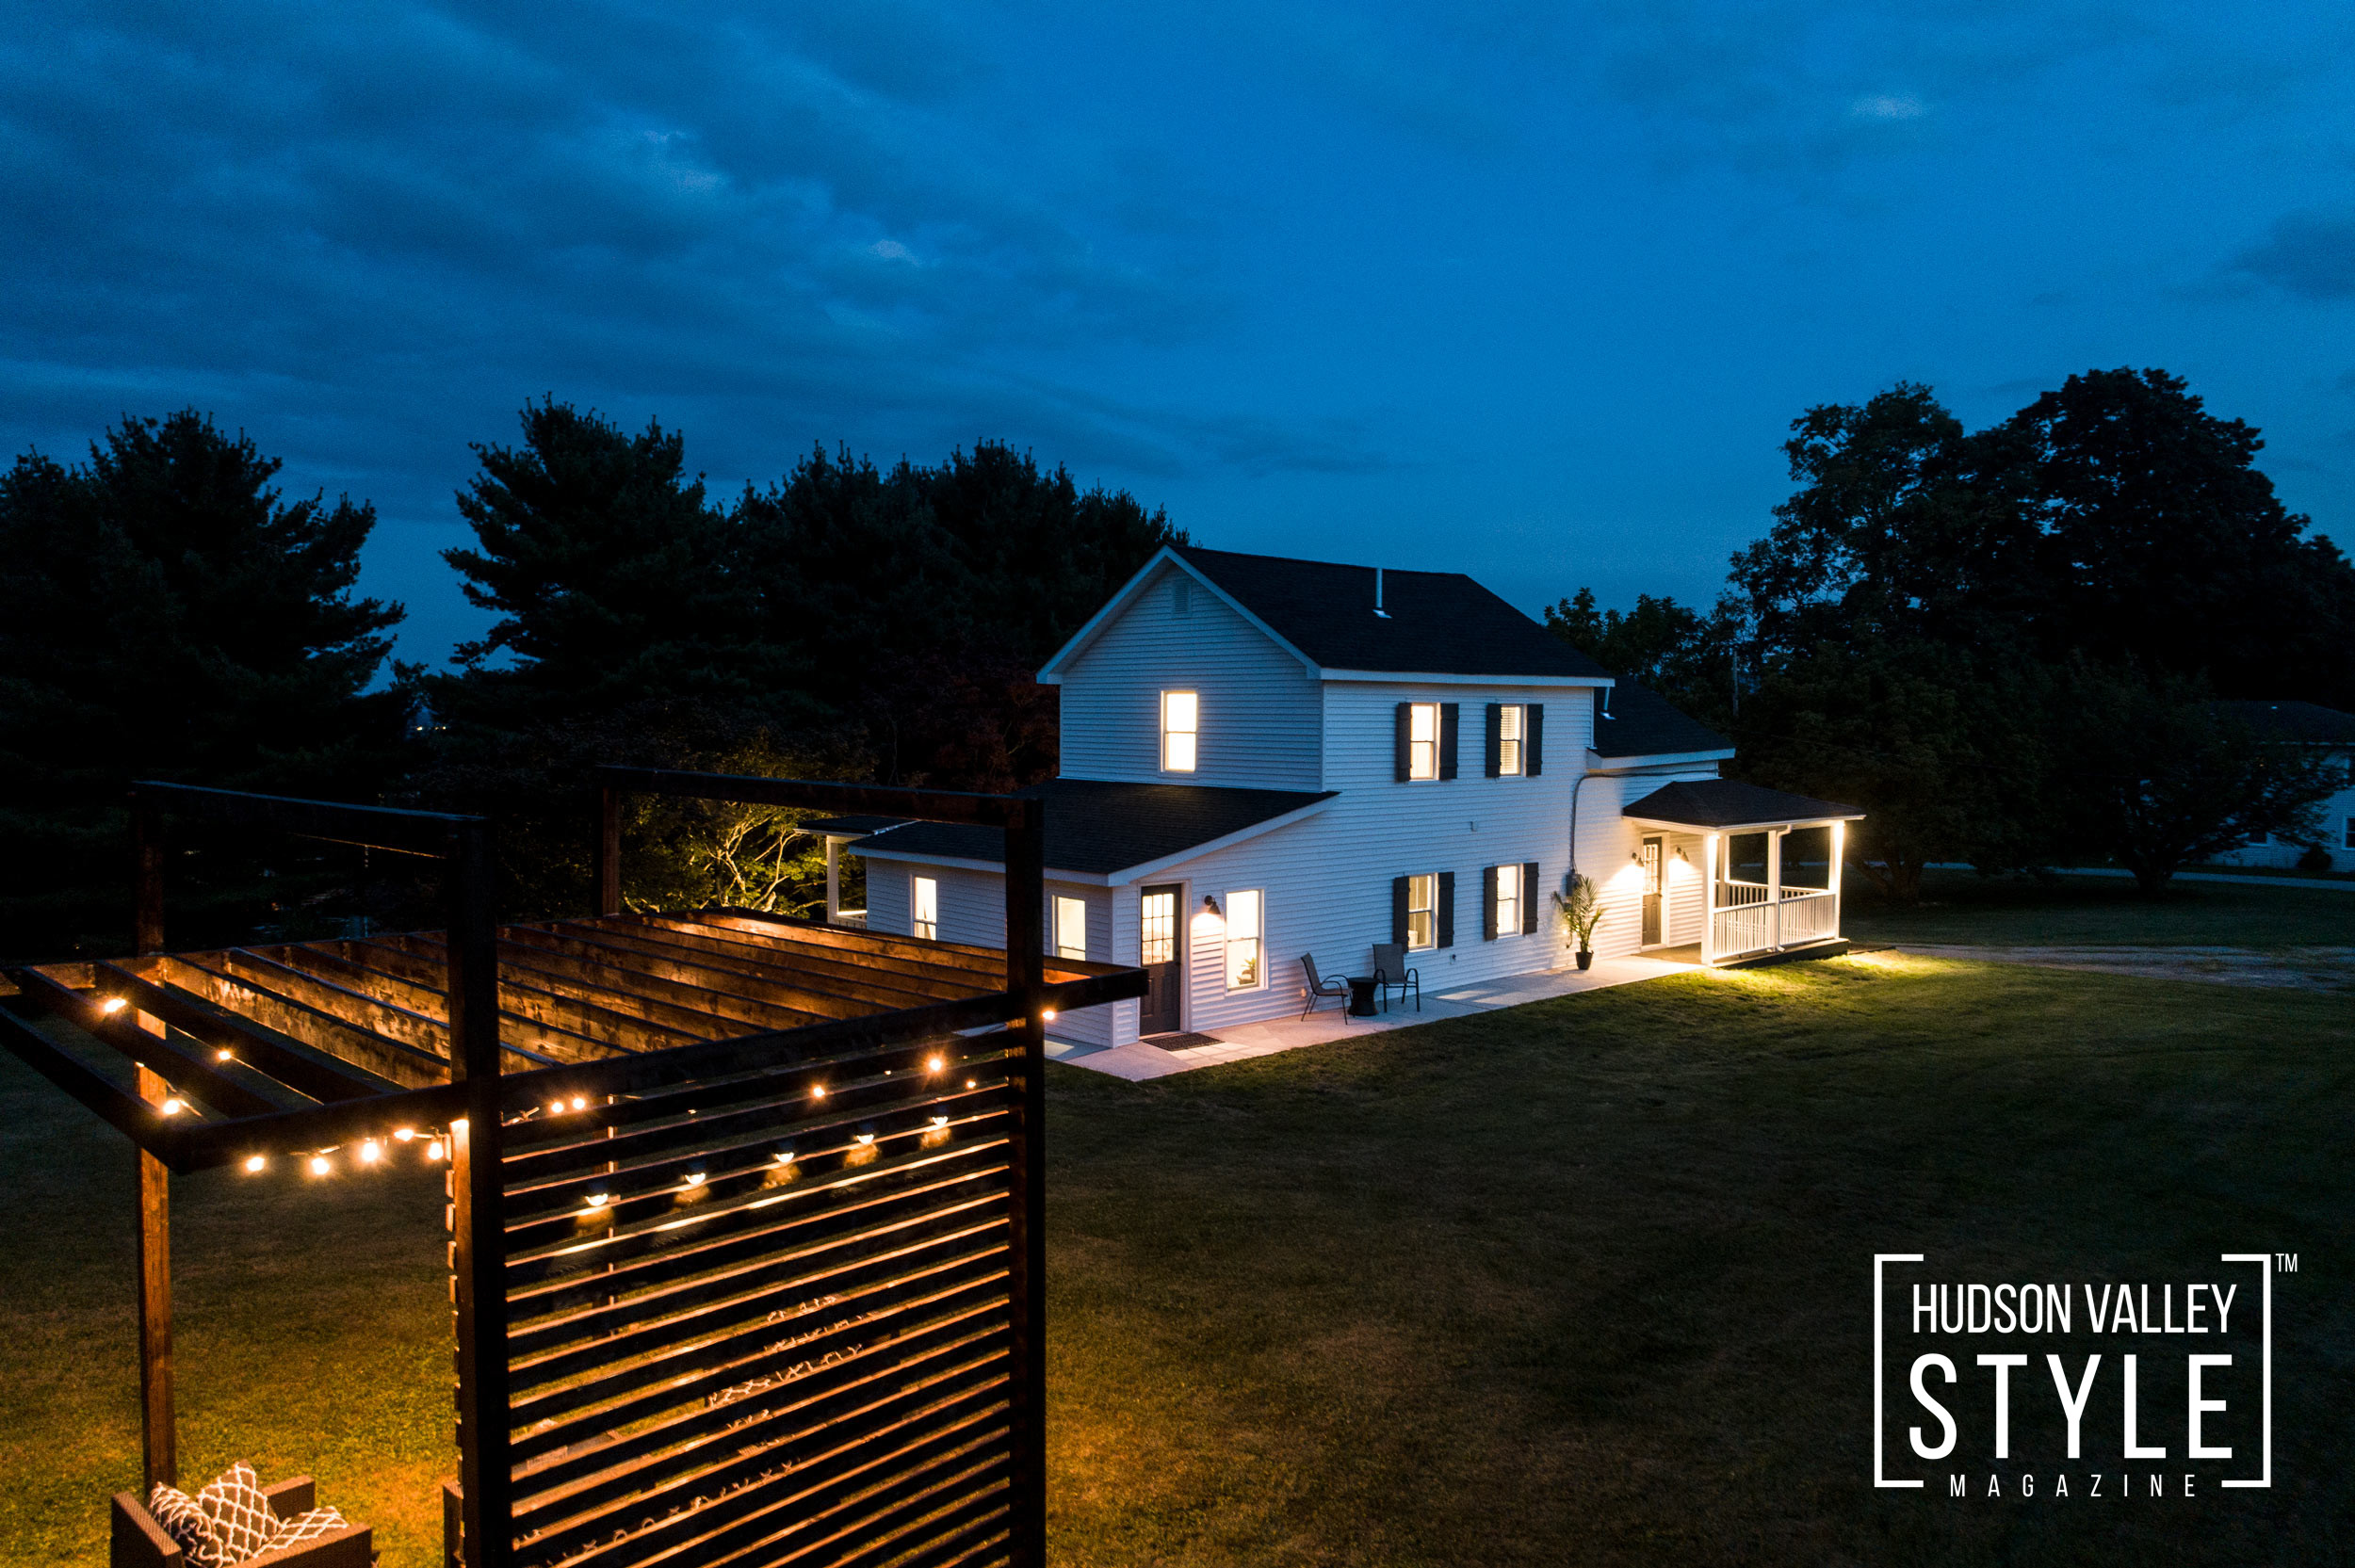 Airbnb Rental or a Dream Home? A Historic Hudson Valley Farmhouse for Sale